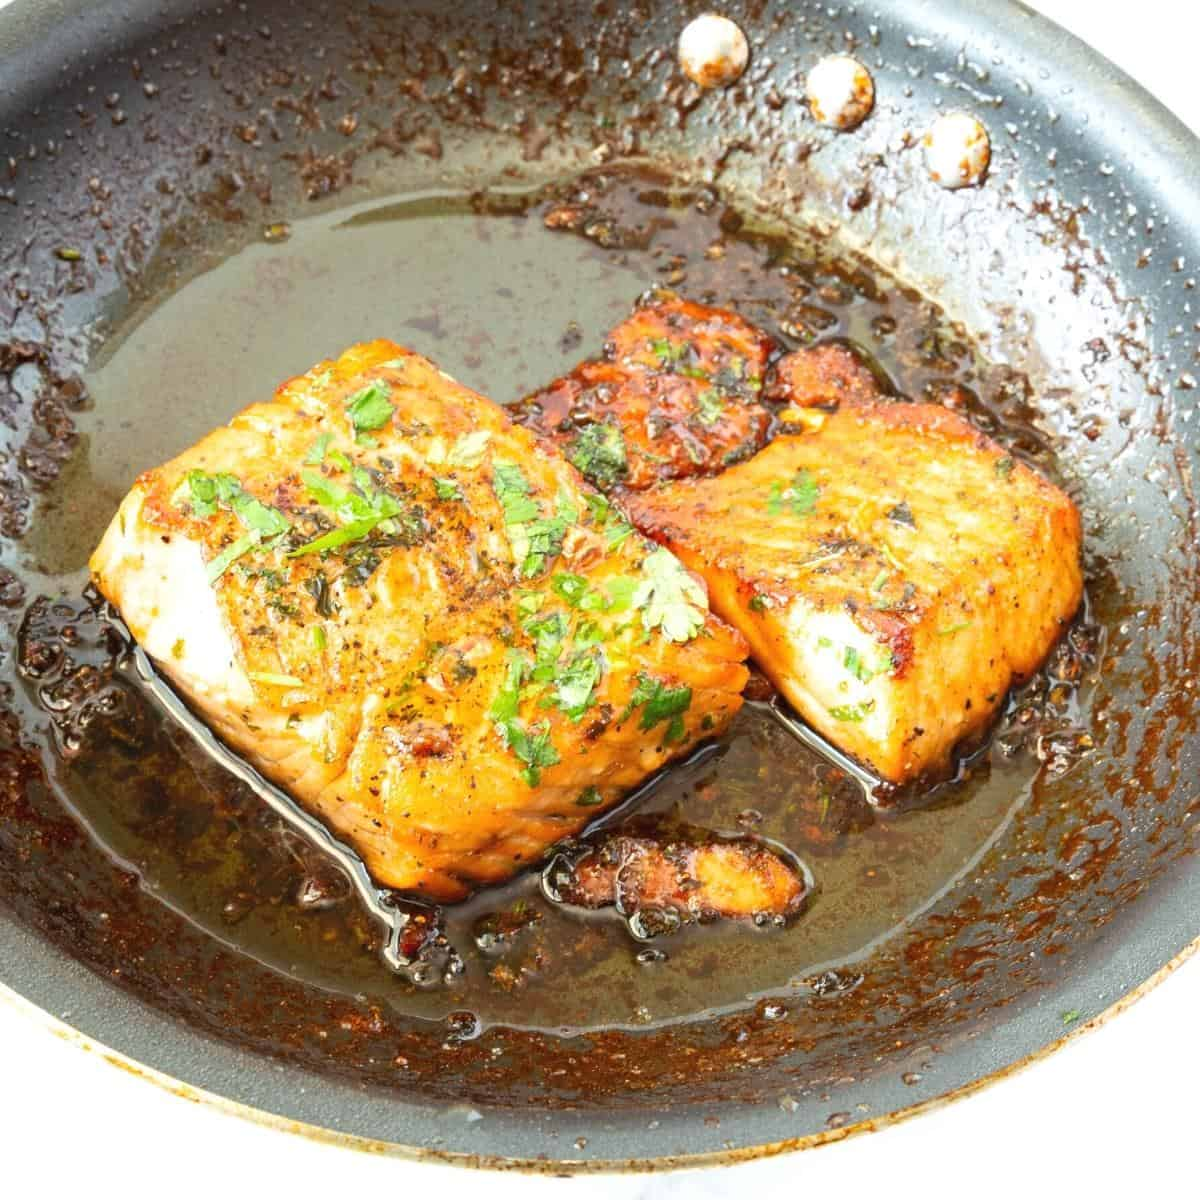 A skillet with salmon pan fried with honey garlic butter.